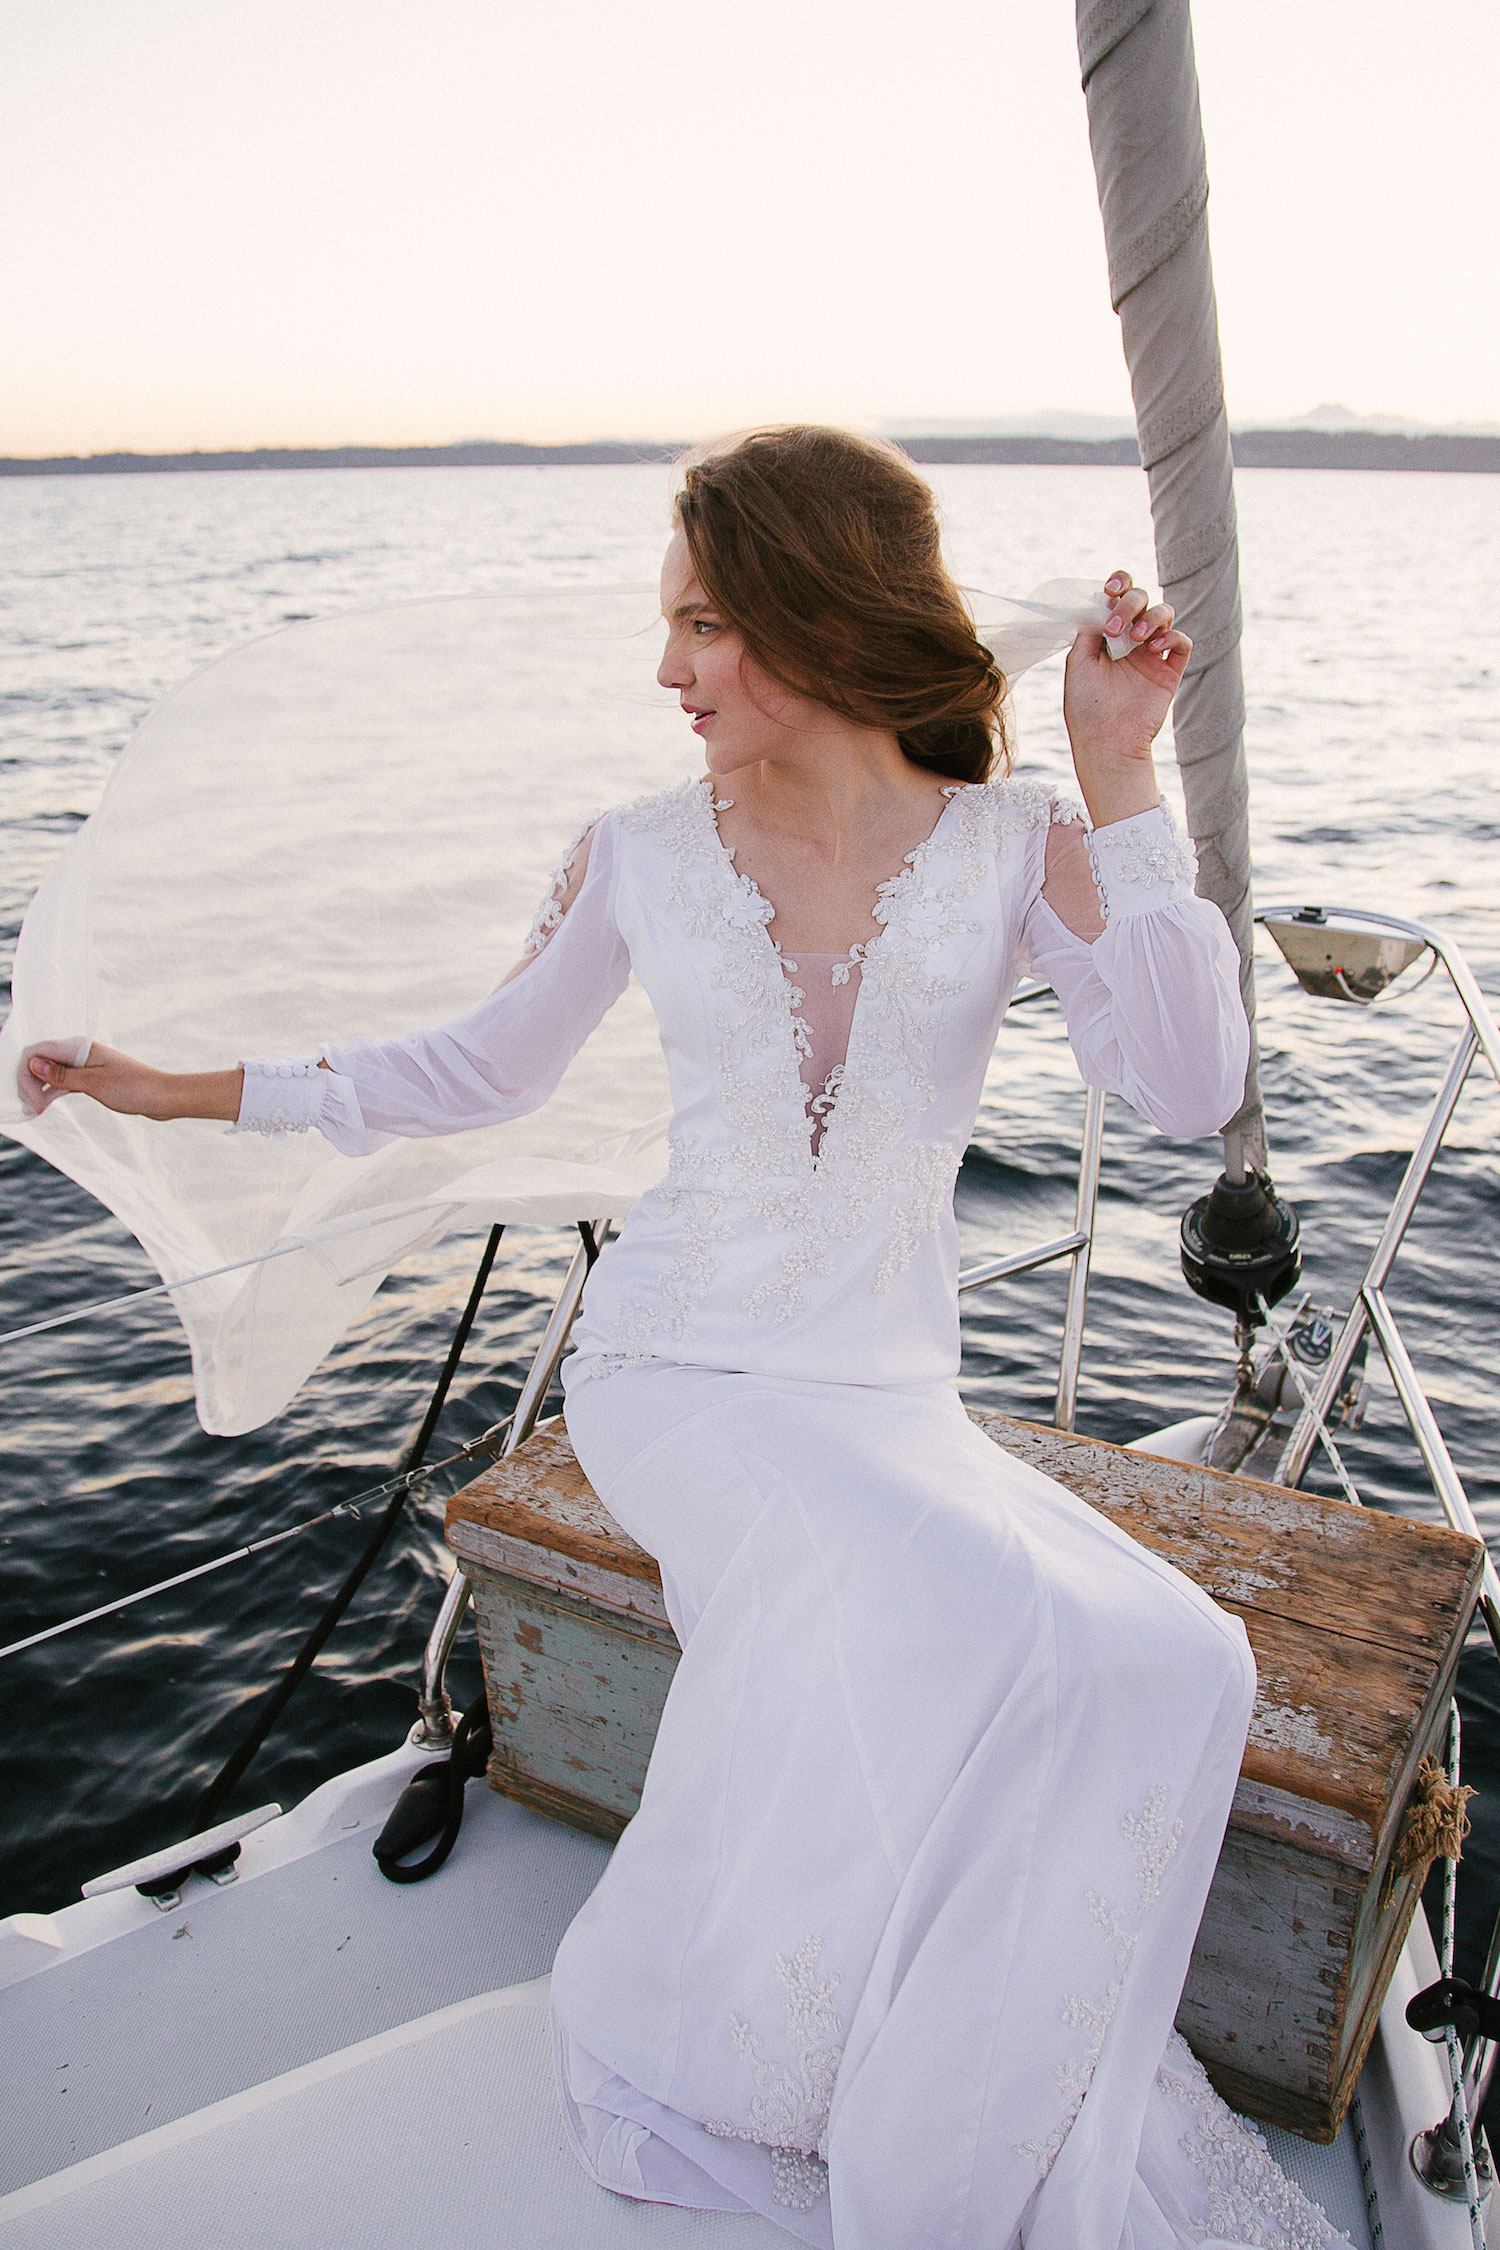 Bride on sailboat in long sleeve vintage inspired wedding dress